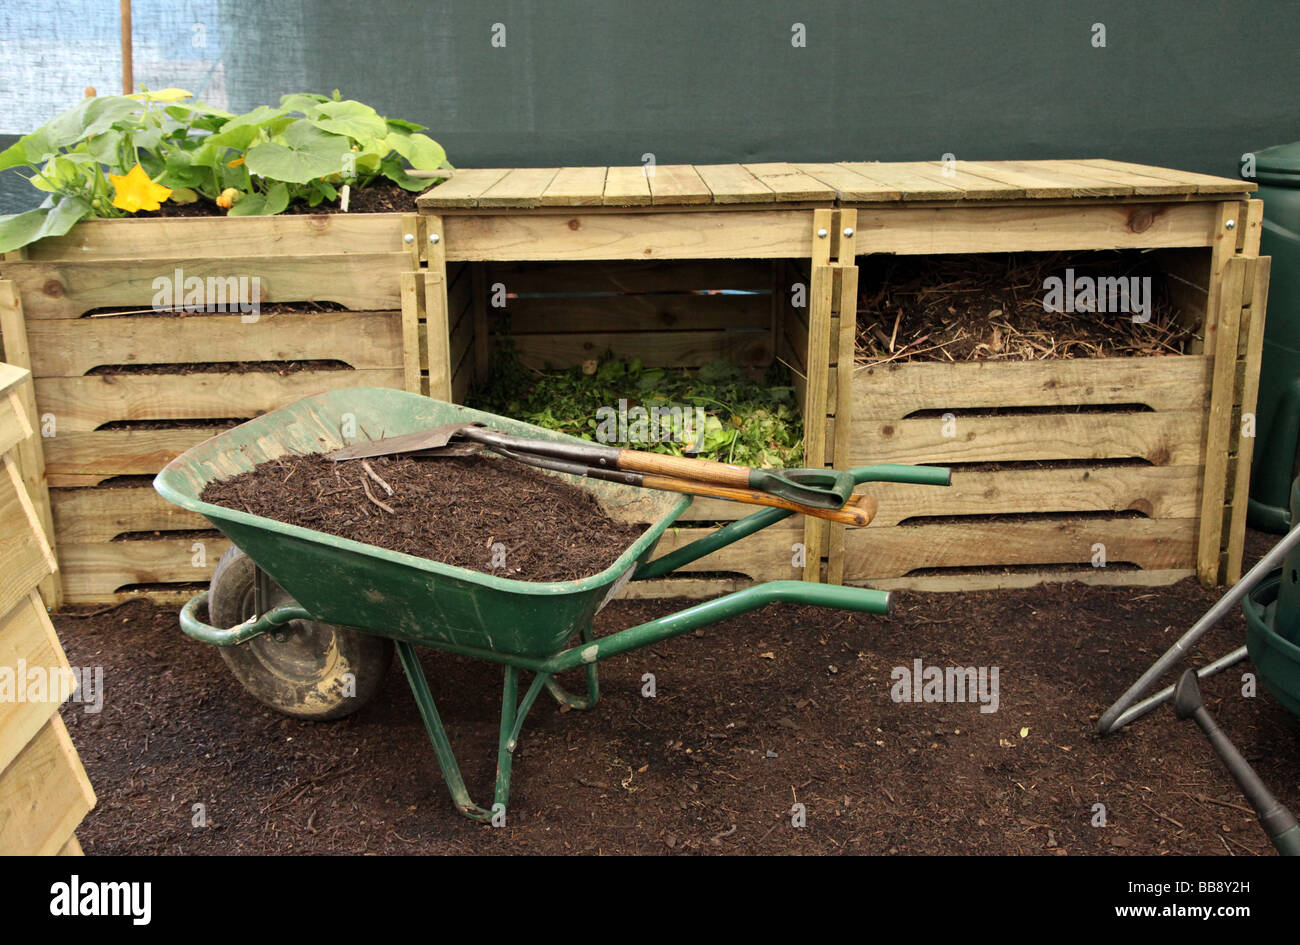 Horticulture Gardening Compost Heaps Stock Photos & Horticulture ...